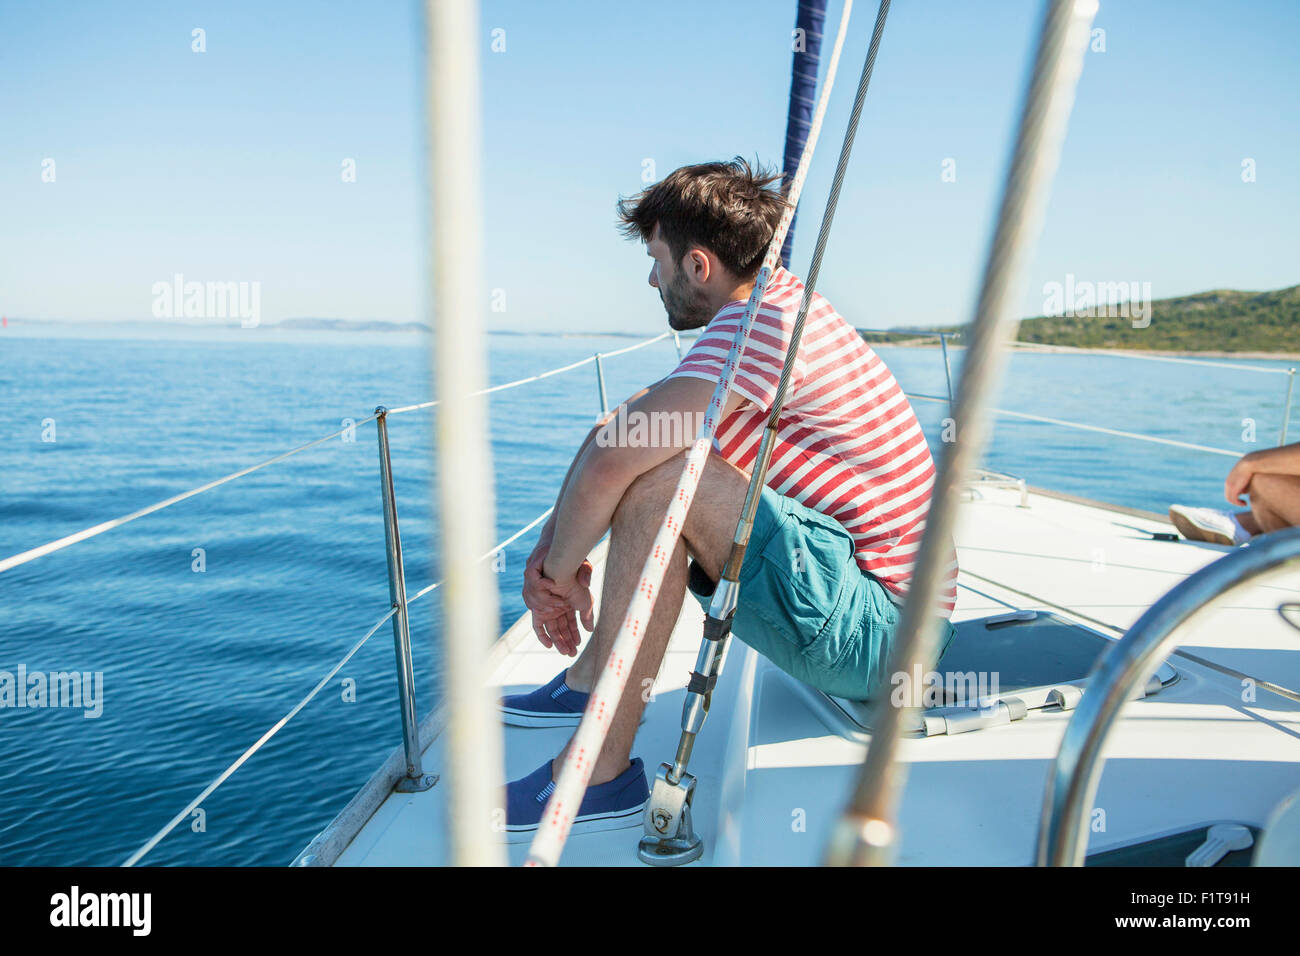 Young man overlooking seascape  on sailboat, Adriatic Sea - Stock Image